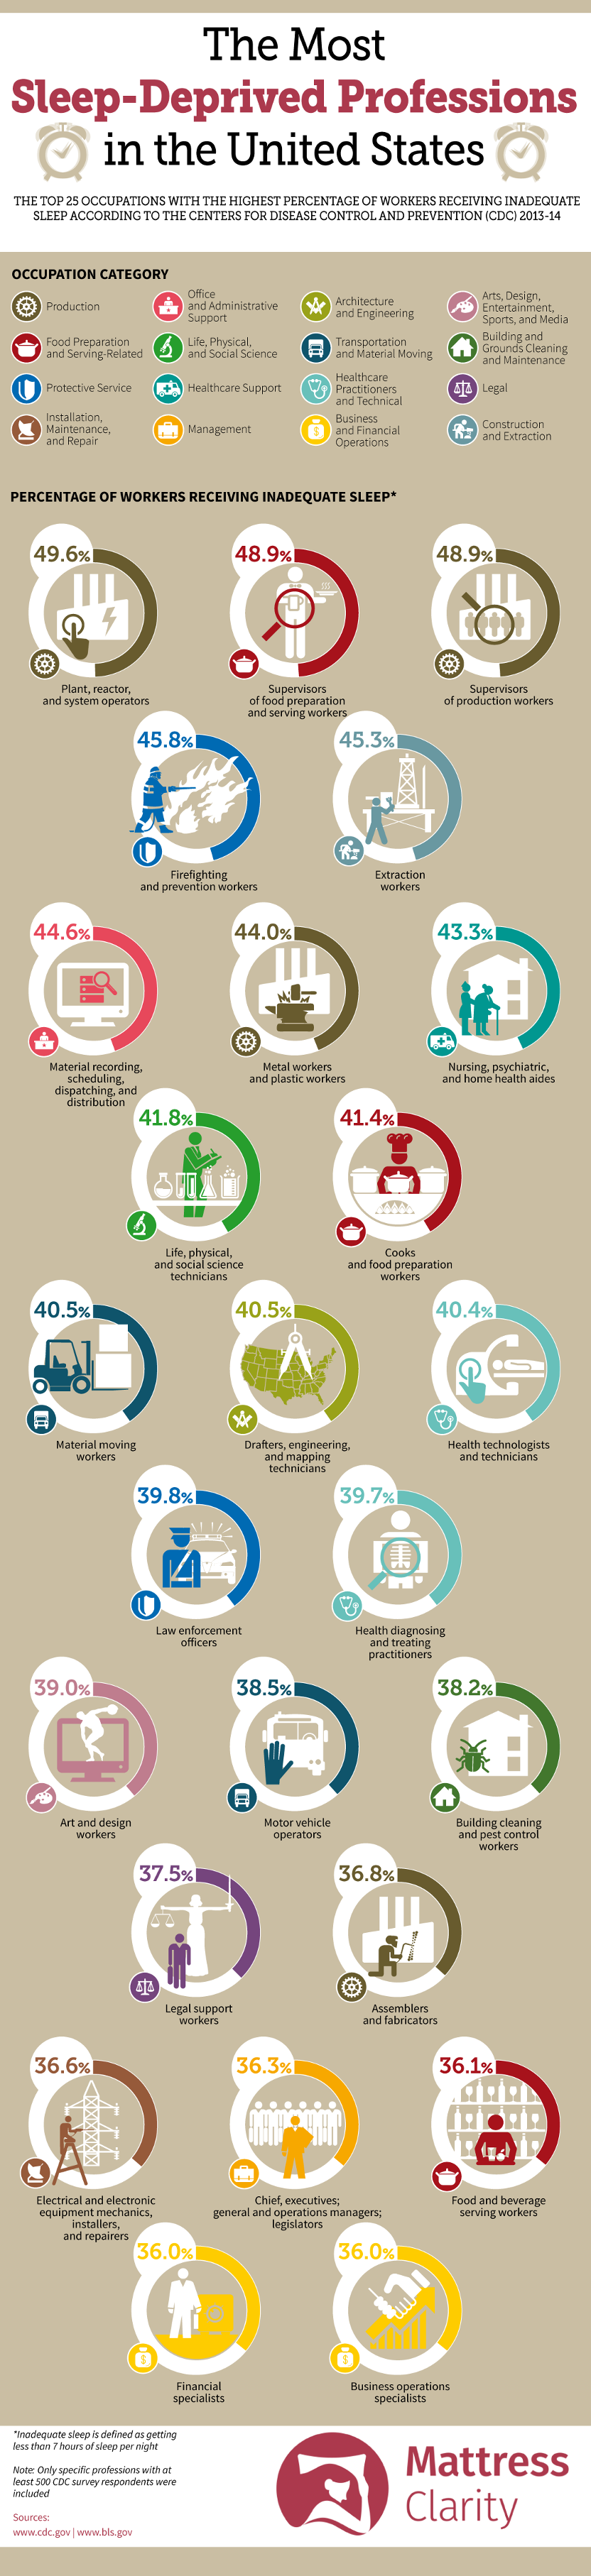 Most Sleep Deprived Professions